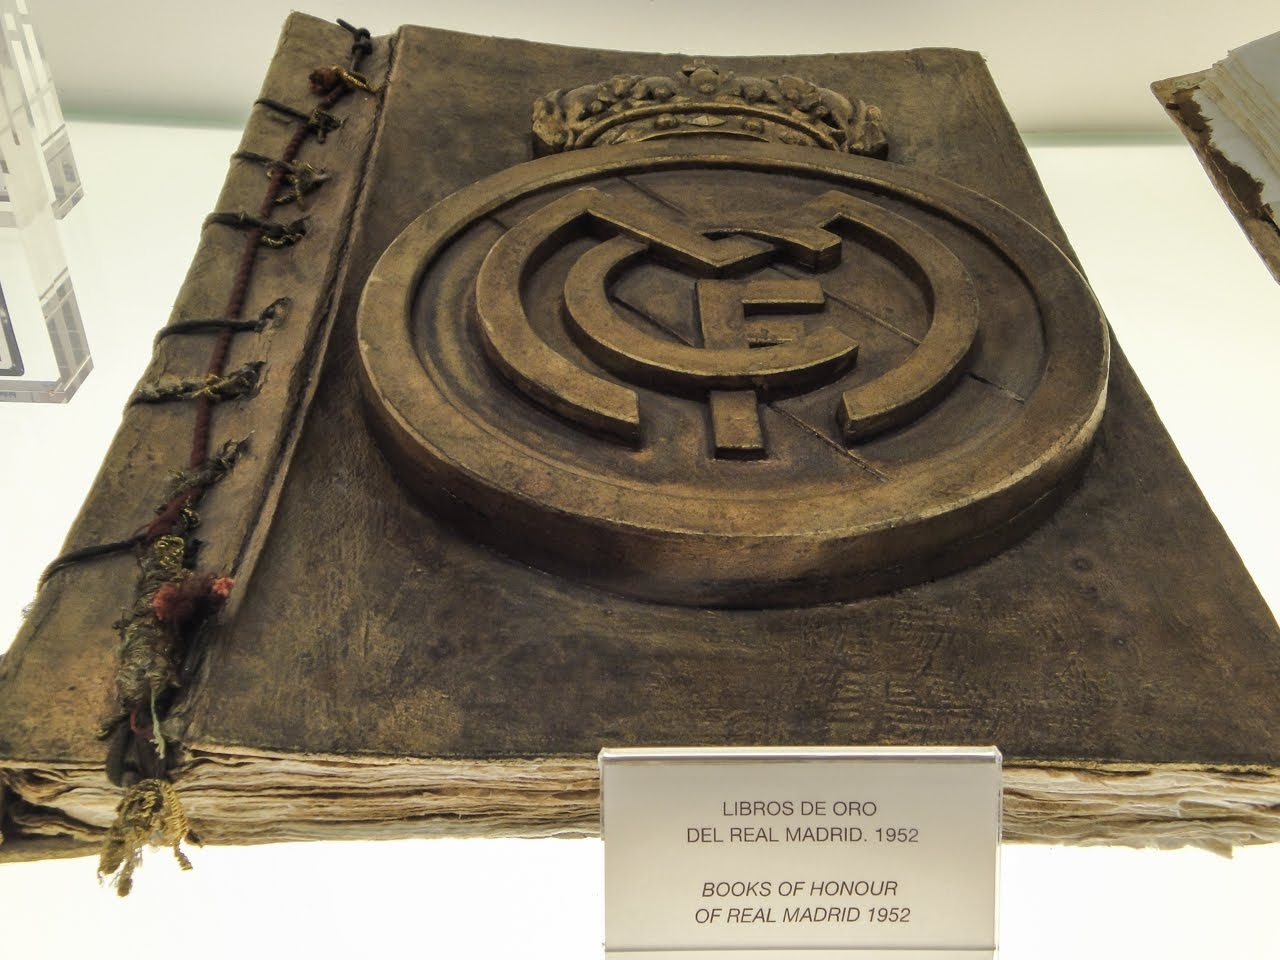 Books of Honor of Real Madrid in 1952